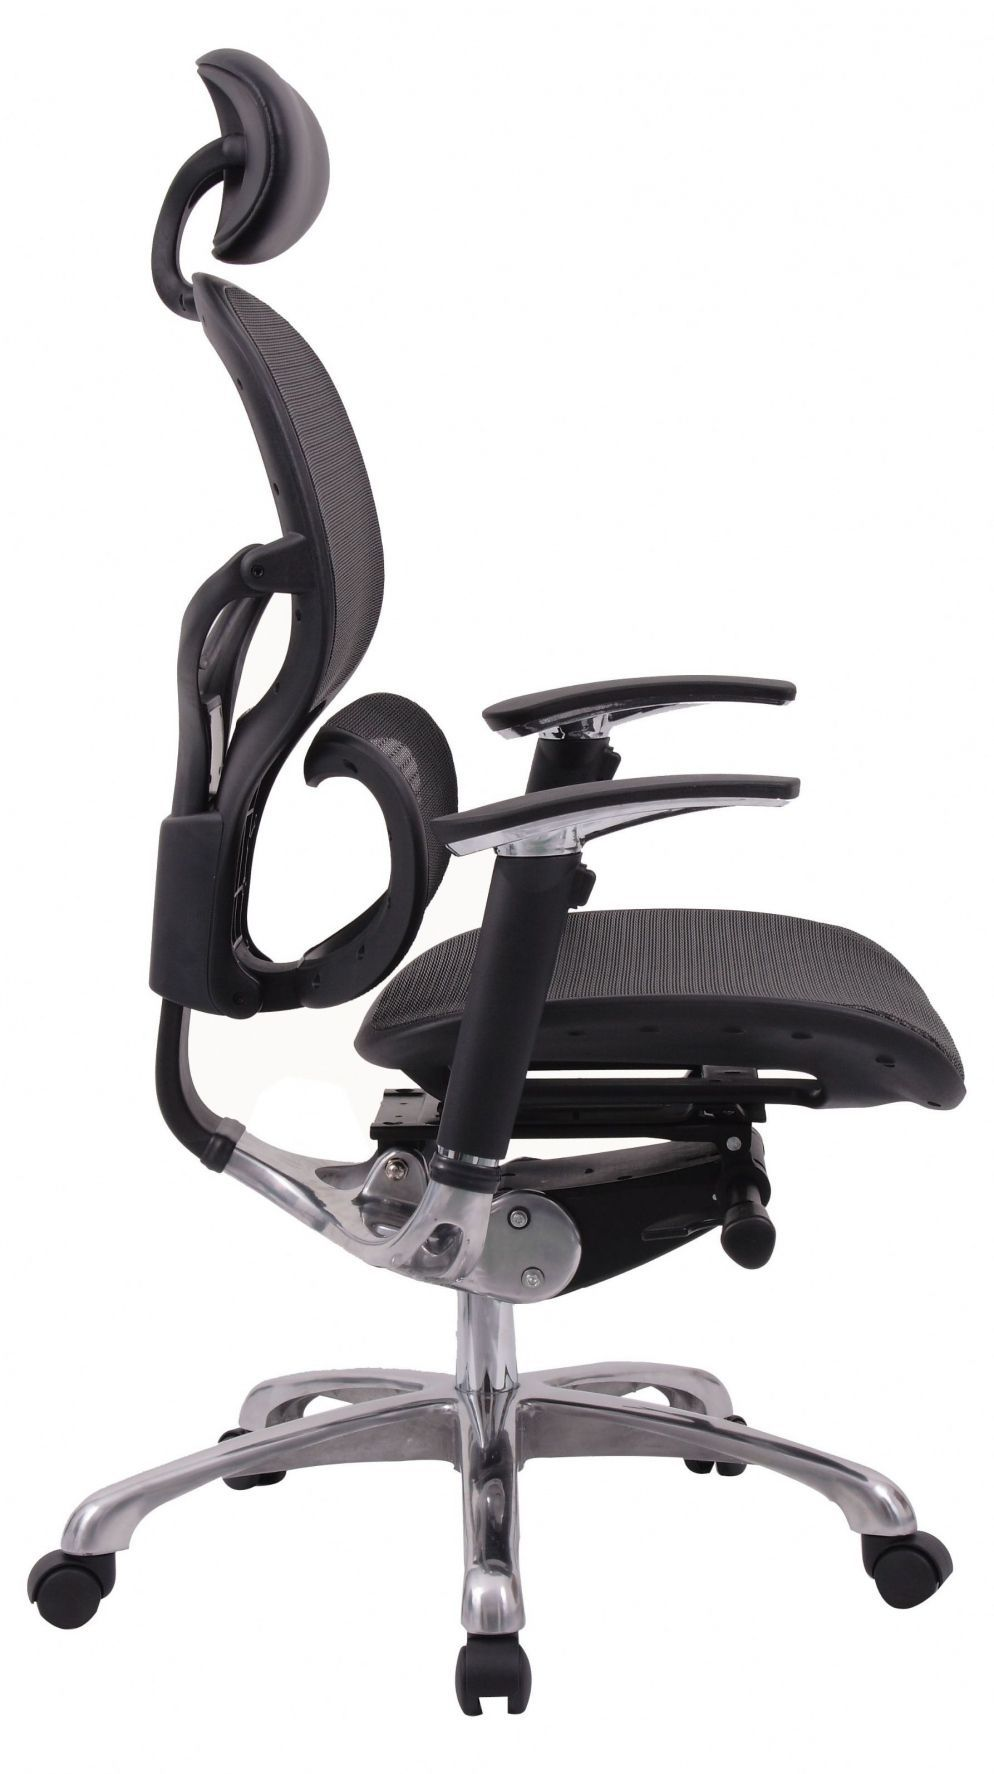 77 Ergonomic Office Chair Reviews Best Paint To Furniture Check More At Http